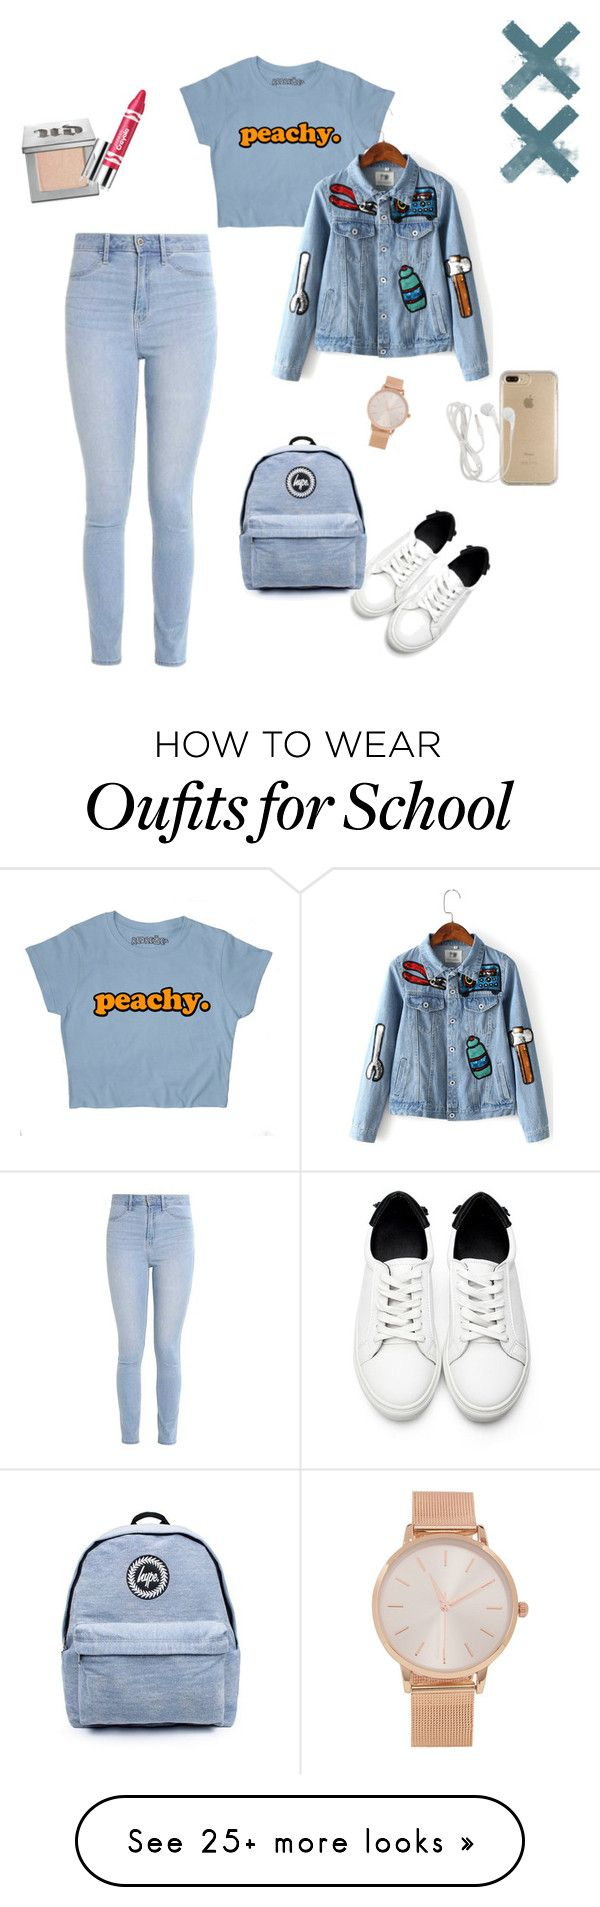 """School Set"" by dynzaavi on Polyvore featuring Hollister Co., Topshop, Urban Decay, Clinique, Speck and Aéropostale"